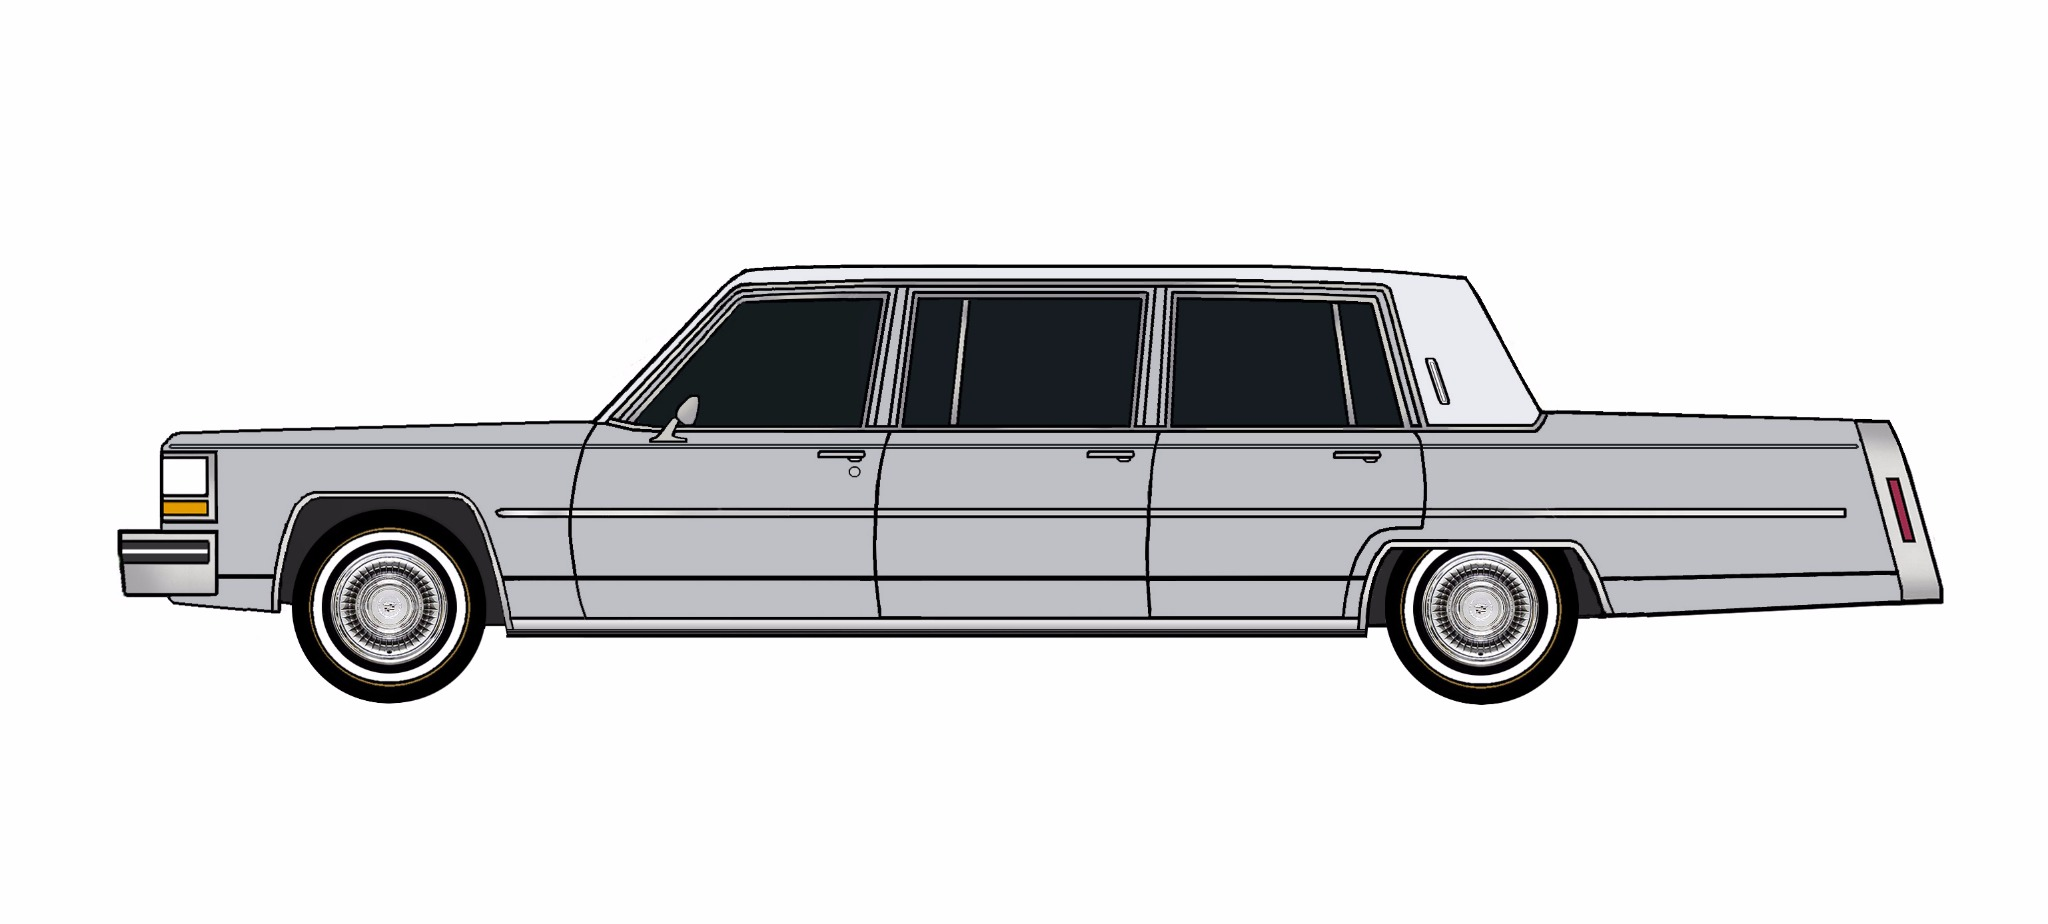 1980 Cadillac Fleetwood Funeral Limo LILAC GREY